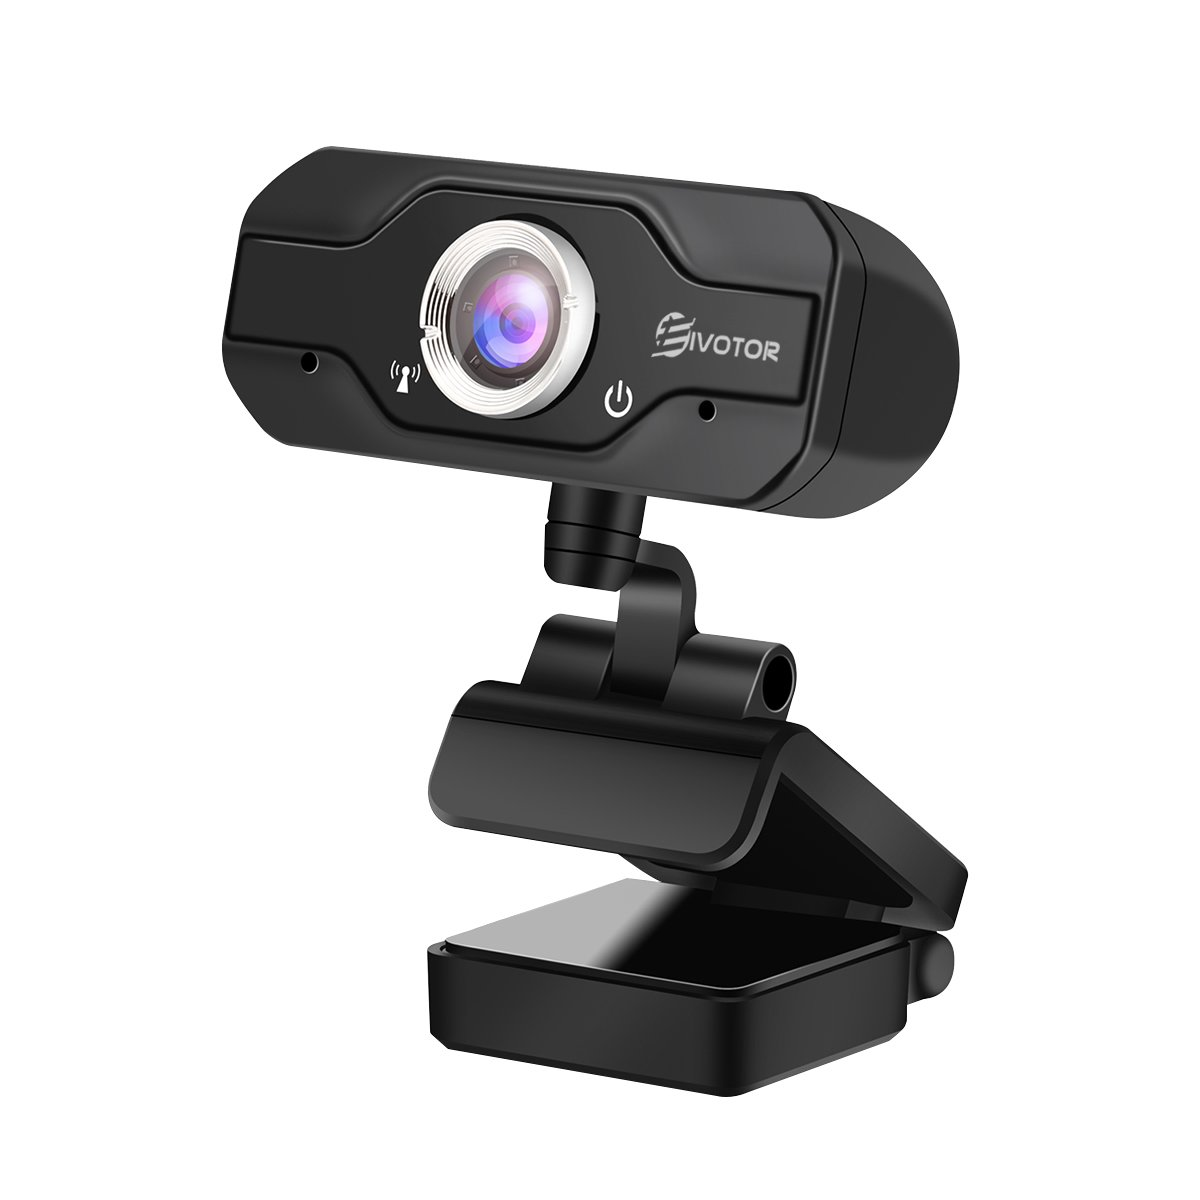 HD Webcam, EIVOTOR PC Webcam 720P USB Mini Computer Camera Built-in Mic, Flexible Rotatable Clip, for Laptops and Desktop, Black by EIVOTOR